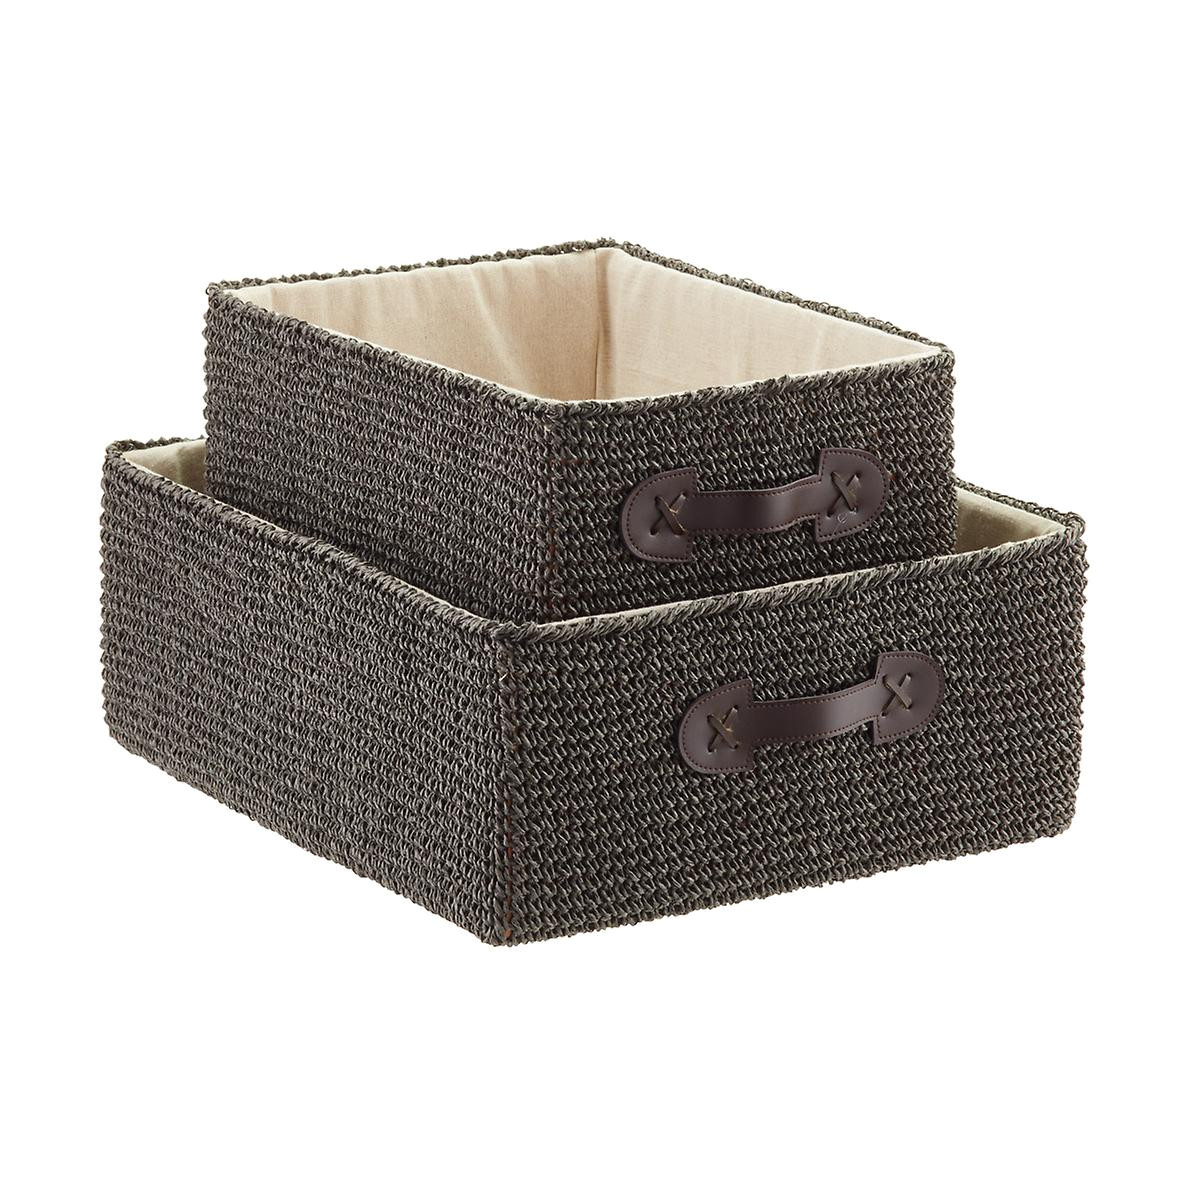 grey crochet rectangular storage bins with handles